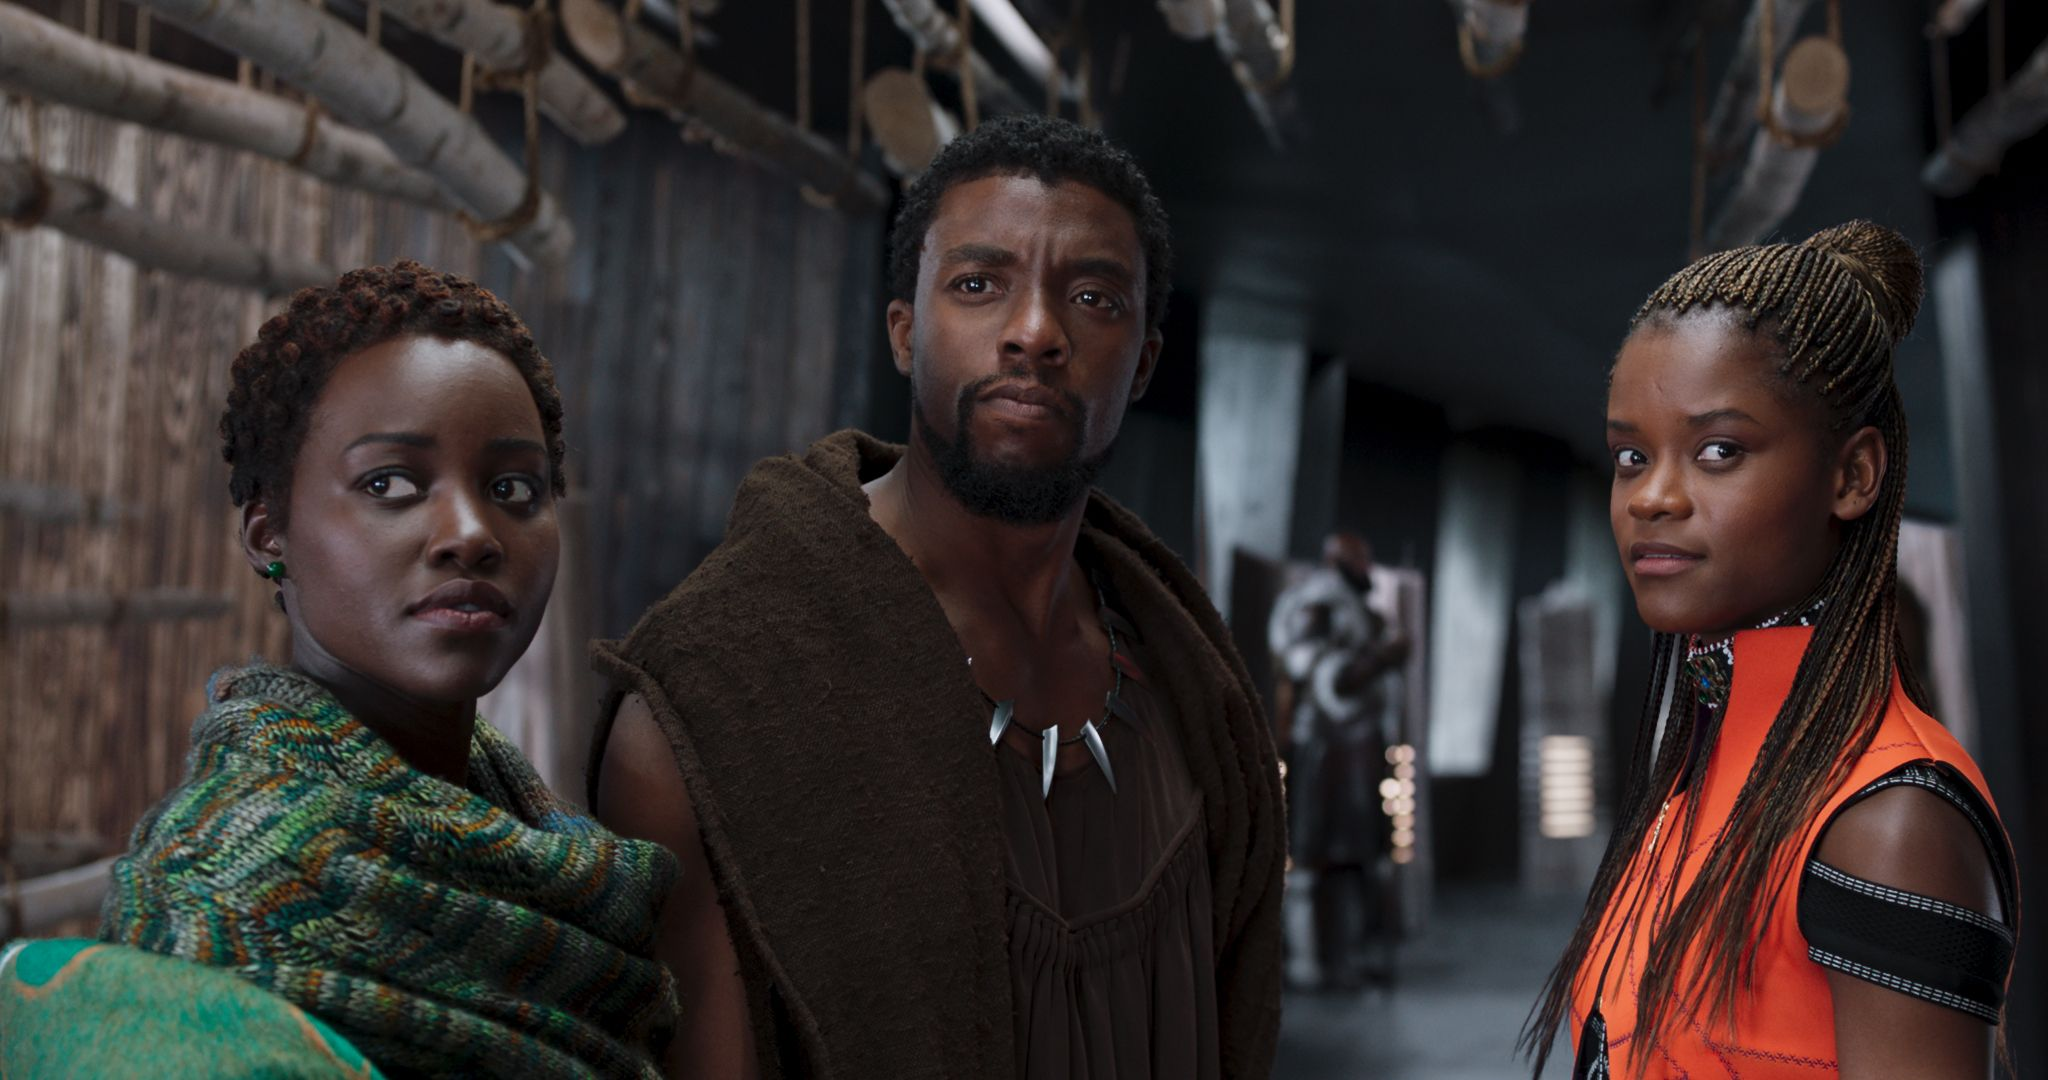 'Black Panther' Continues Dominating Box Office With $108M in Second Weekend